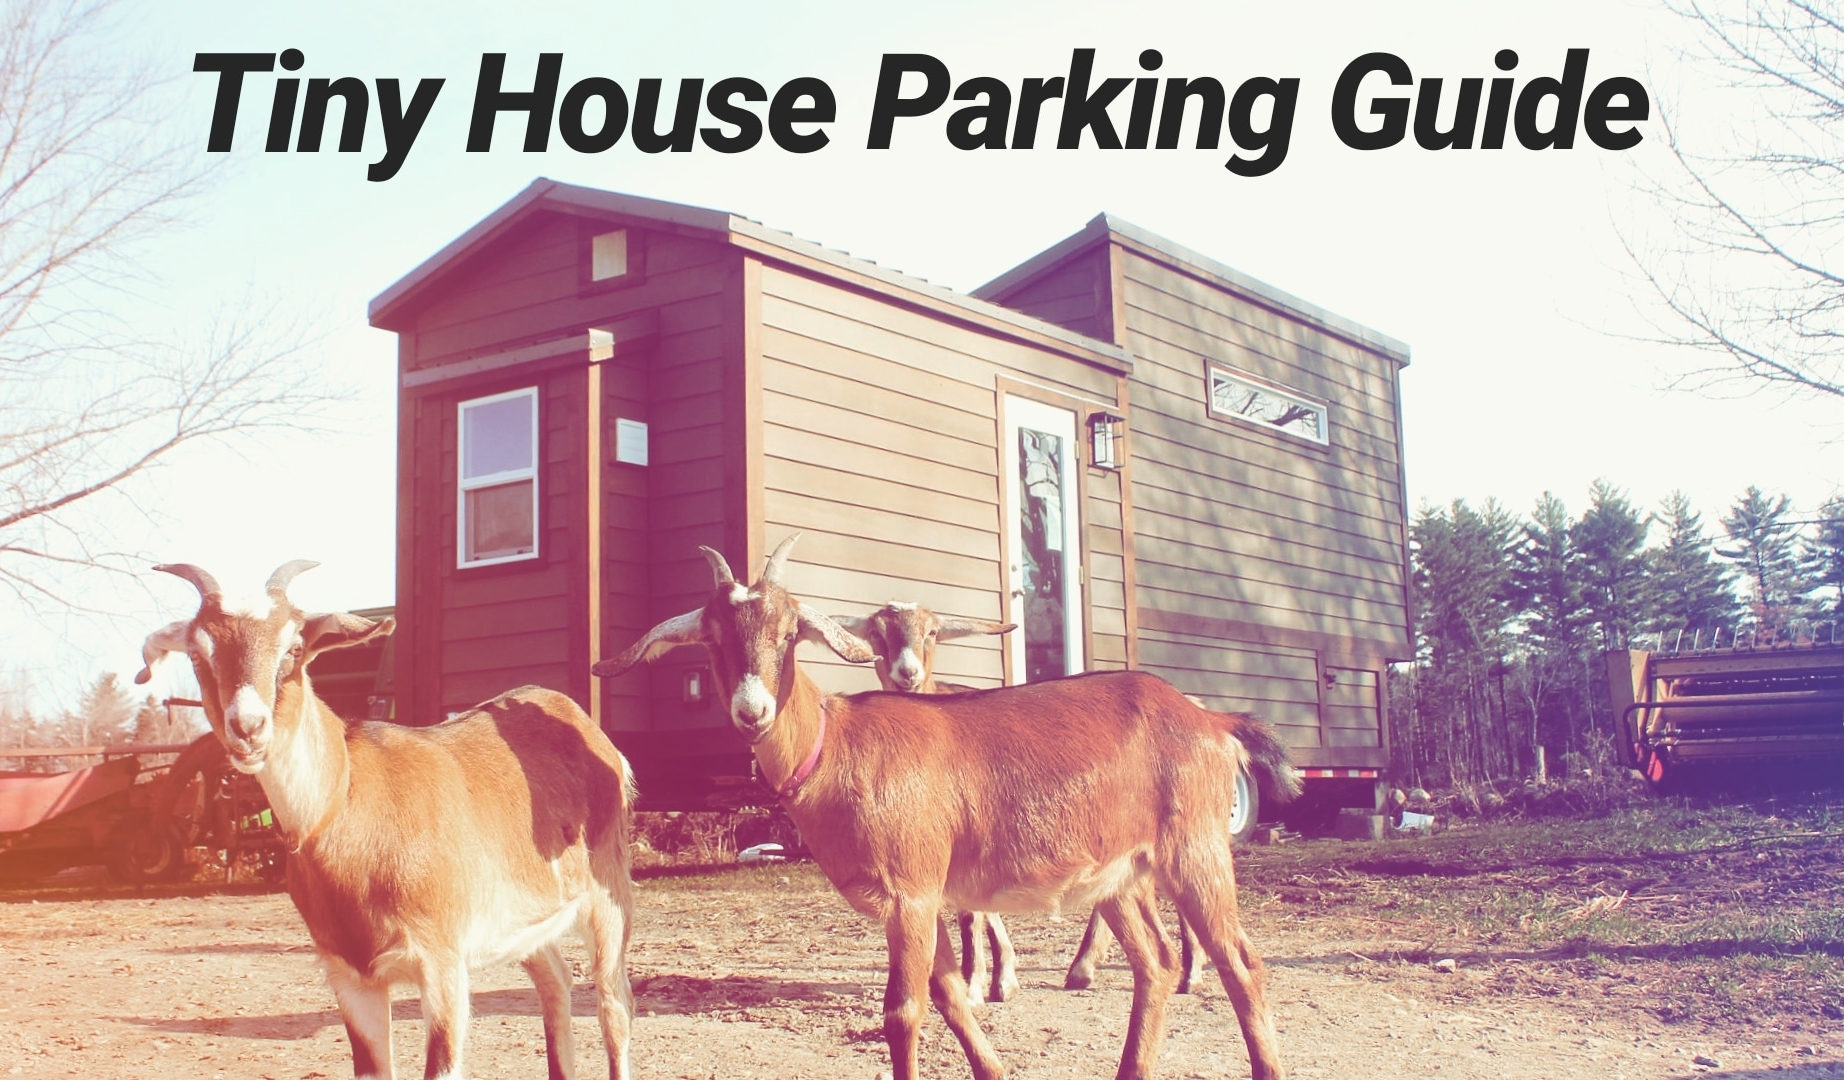 tiny-house-parking-guide.jpg